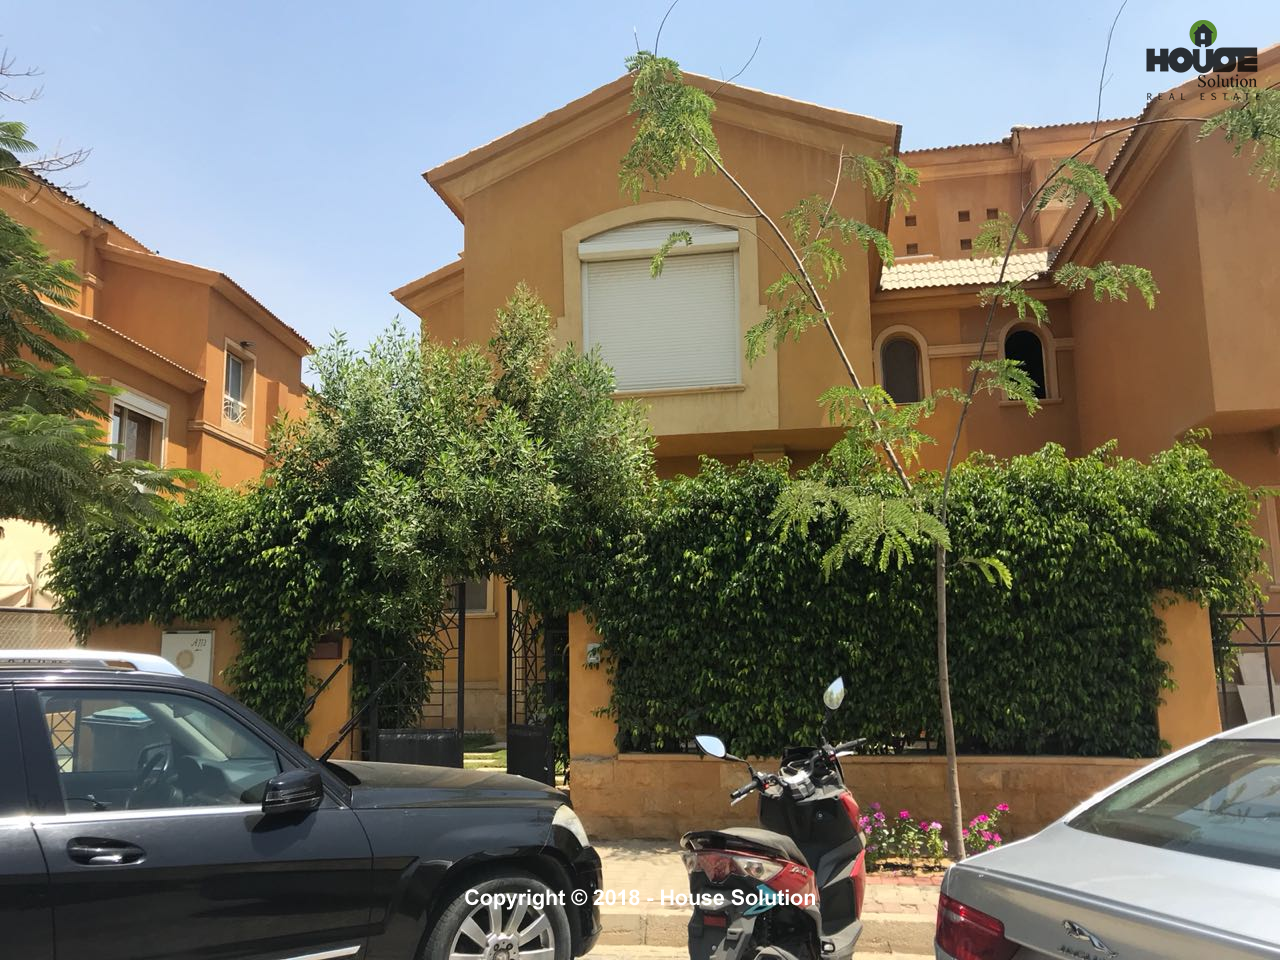 Villas For Sale In New Cairo Dyar -#14